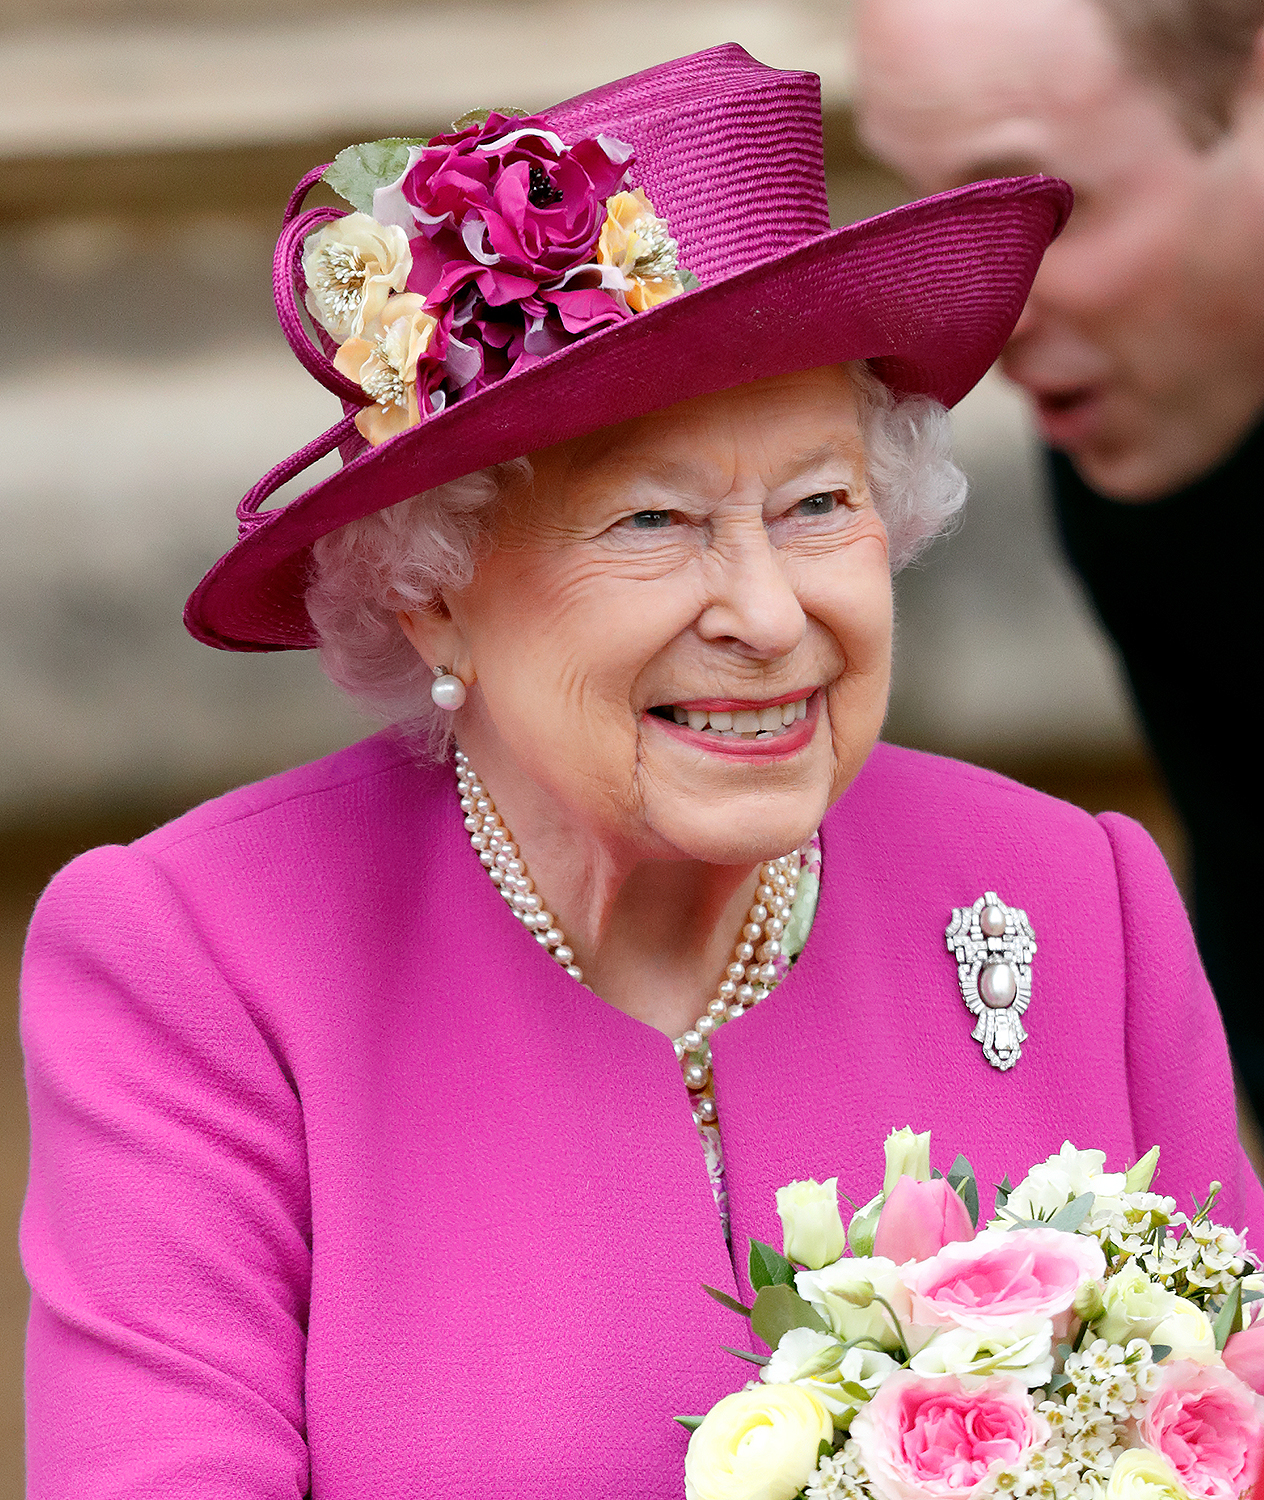 The Queen sends message of 'hope and light' on Easter Sunday